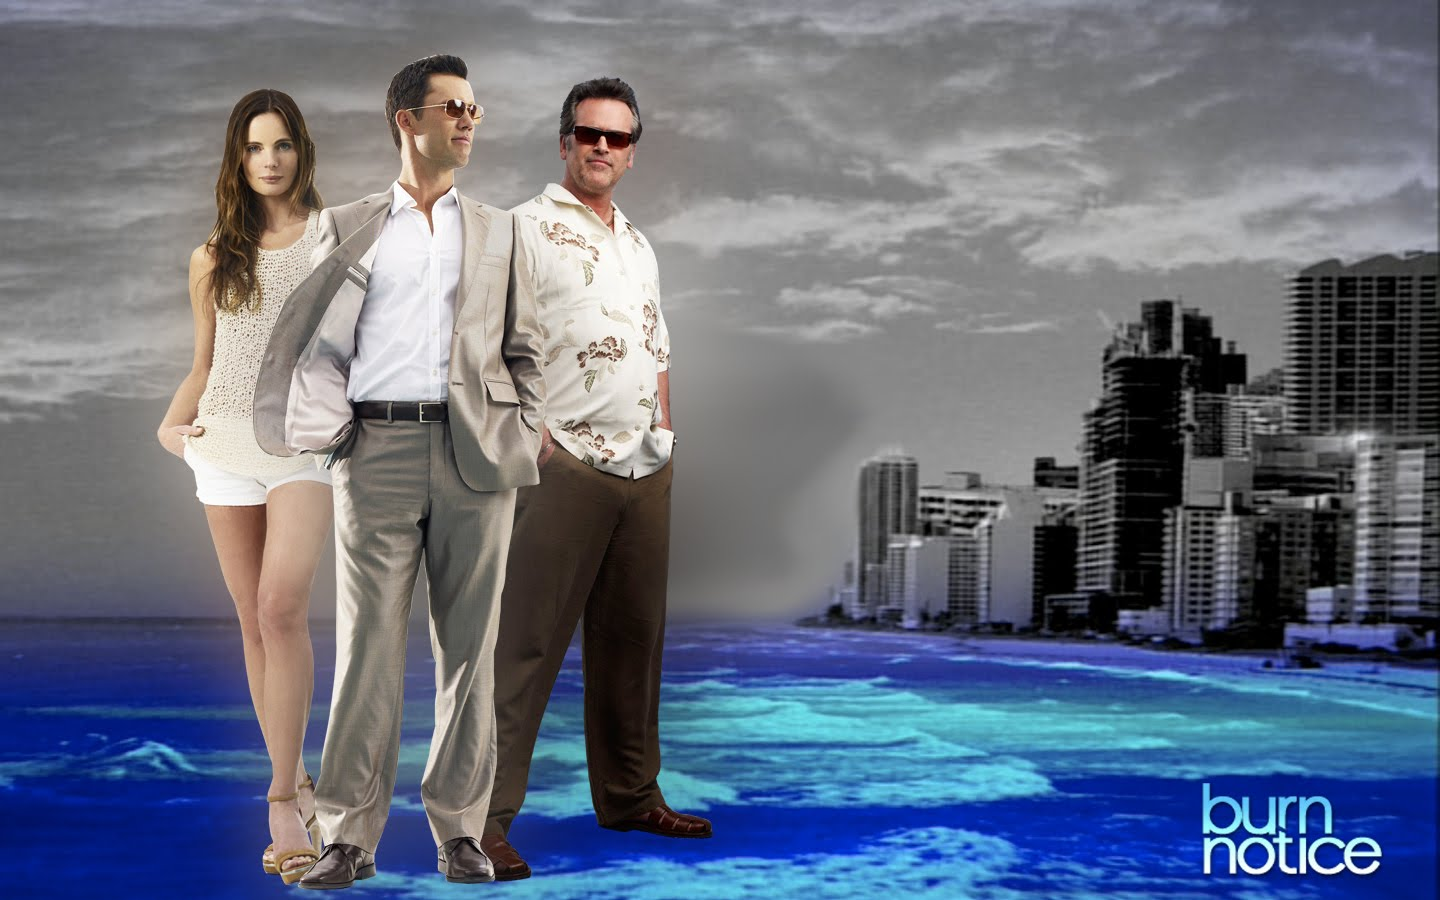 Costumes & Props from USA Network's BURN NOTICE Set for On-Line Auction